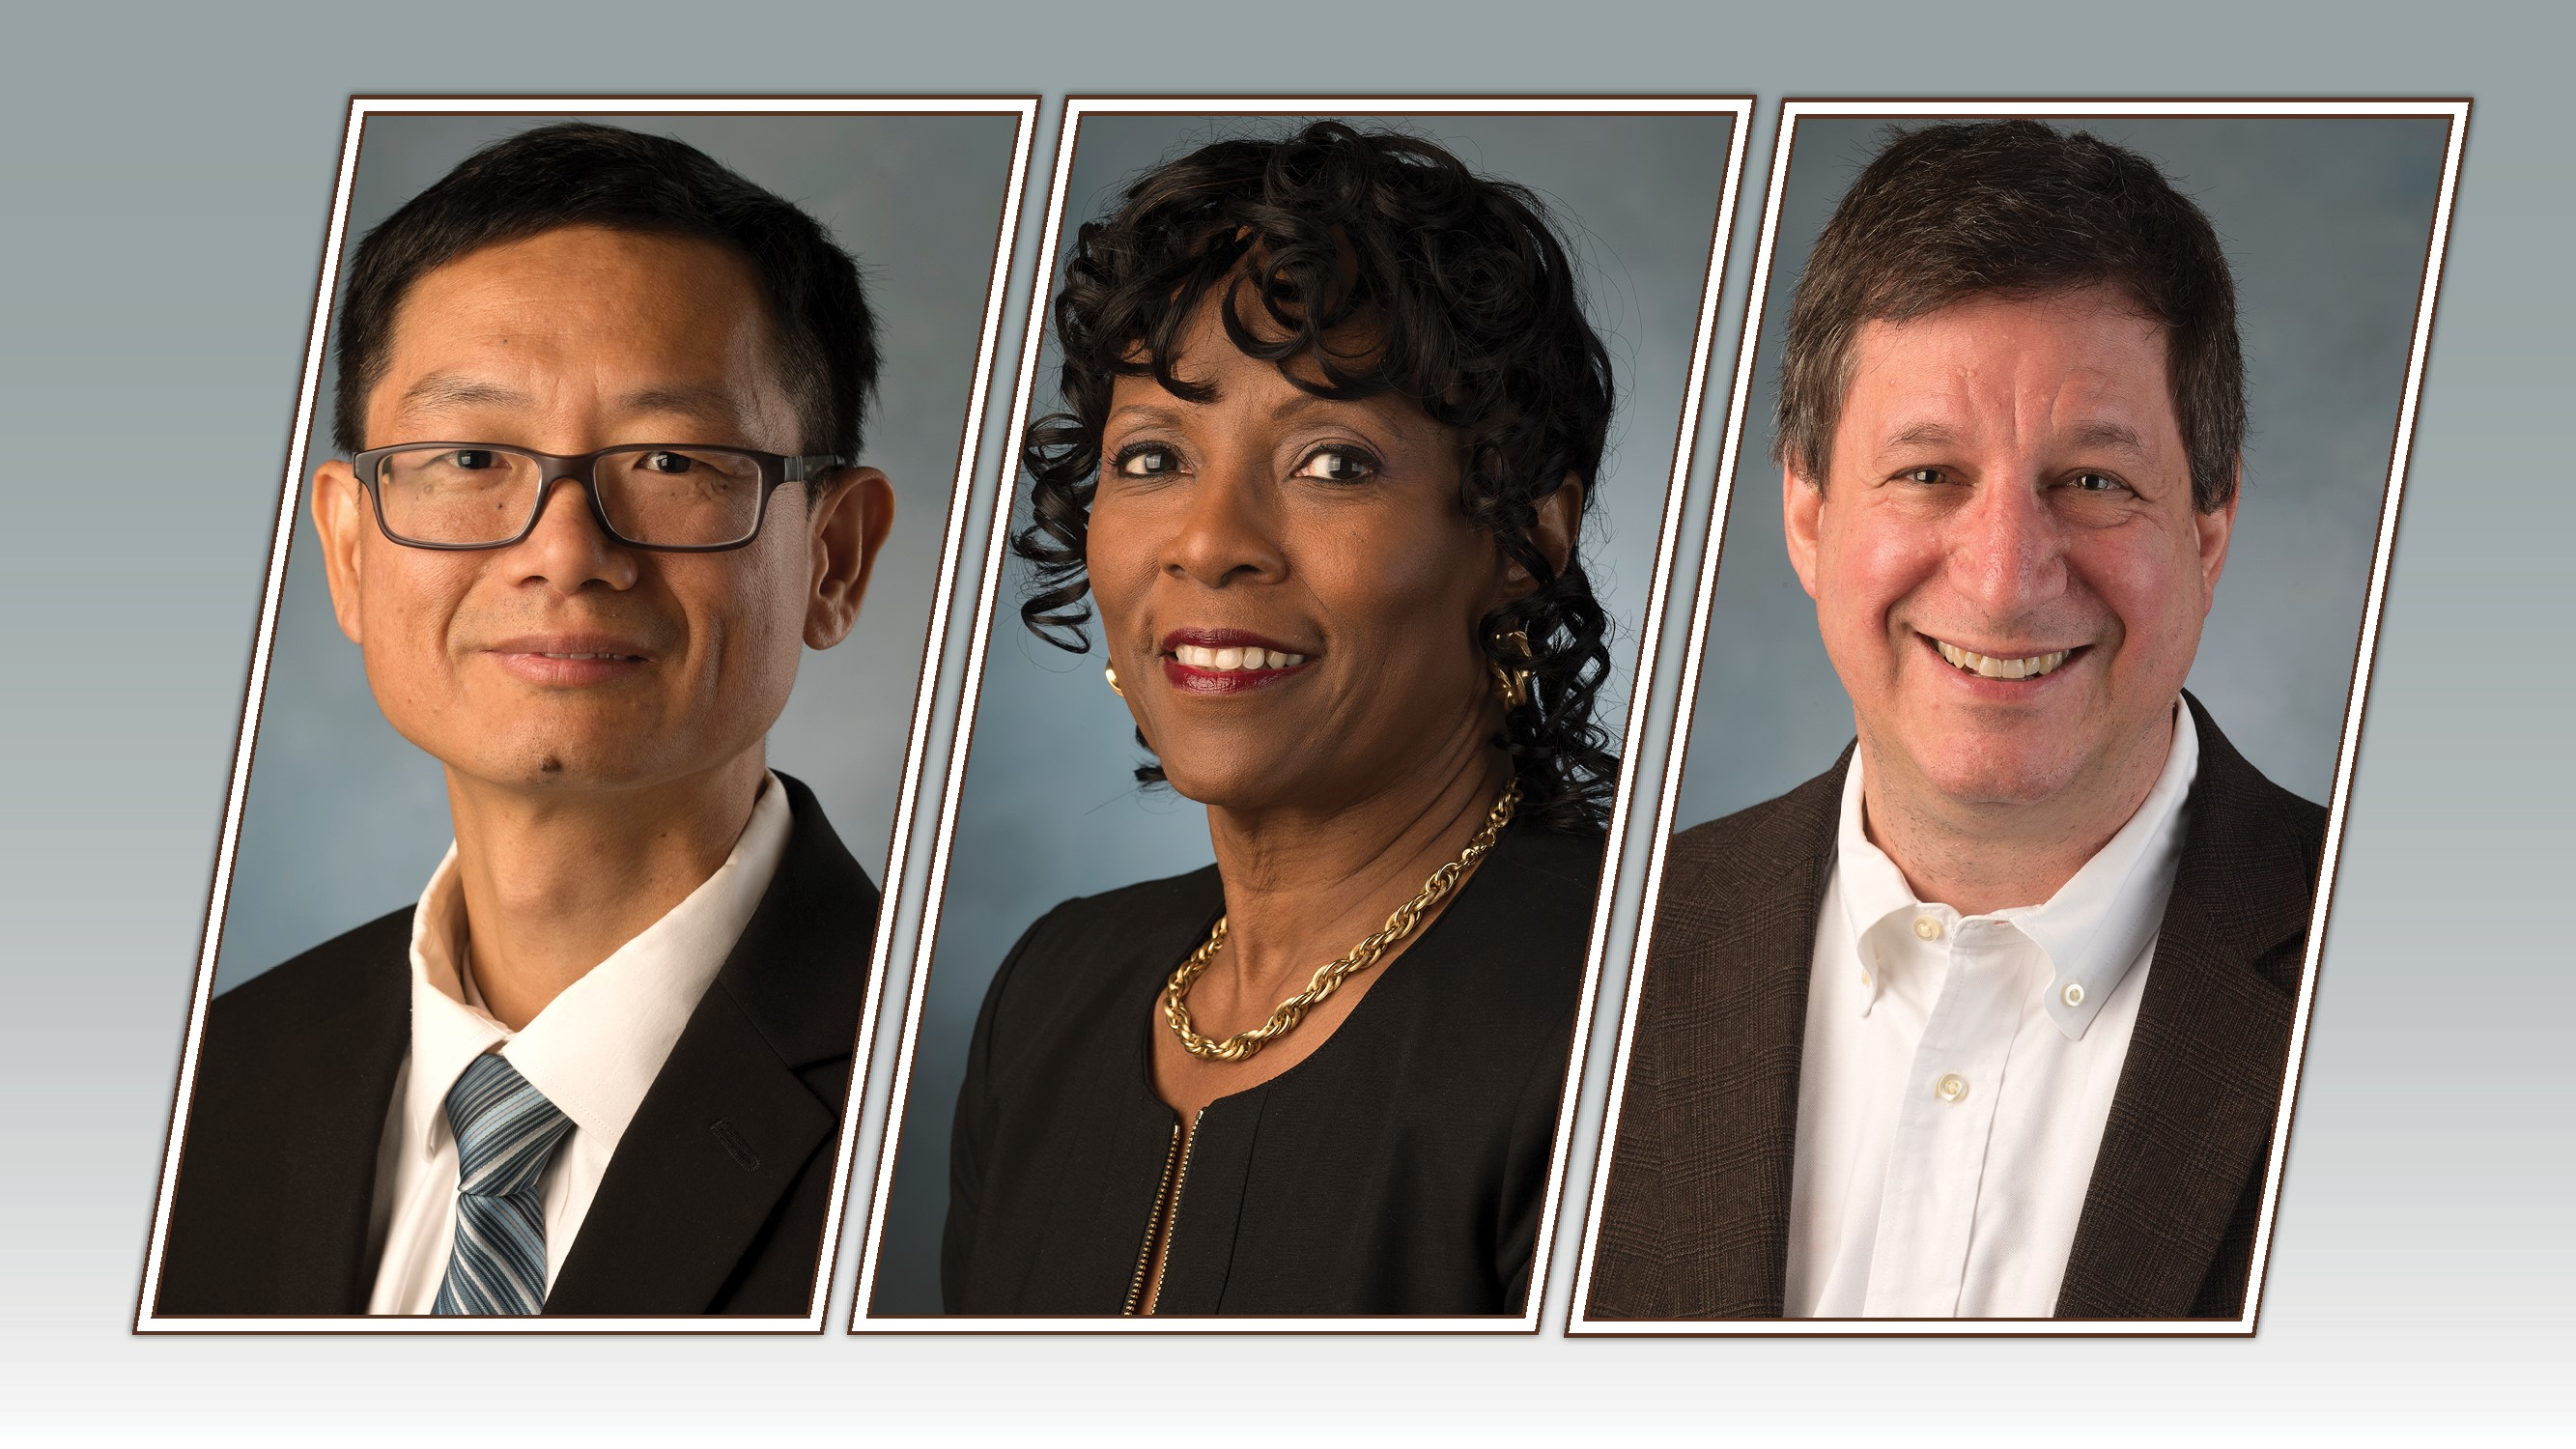 The winners of the 2018 Provost's Awards for Excellence are Mingheng Li, Felicia Friendly Thomas and Alexander Rudolph.